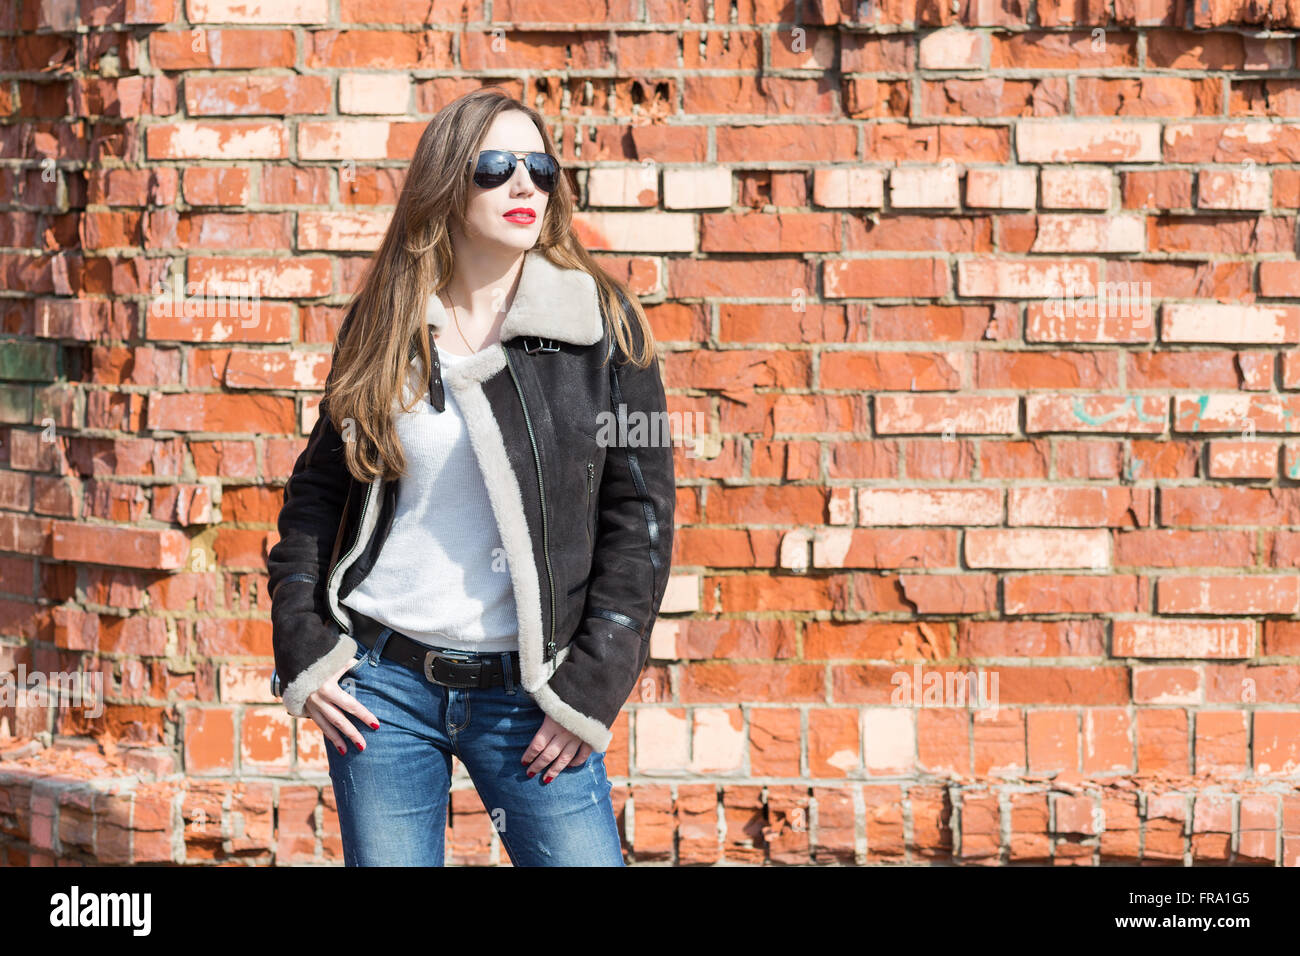 Pretty european girl in sunglasses with photo camera against red brick wall. Happy young woman at sunny day - Stock Image